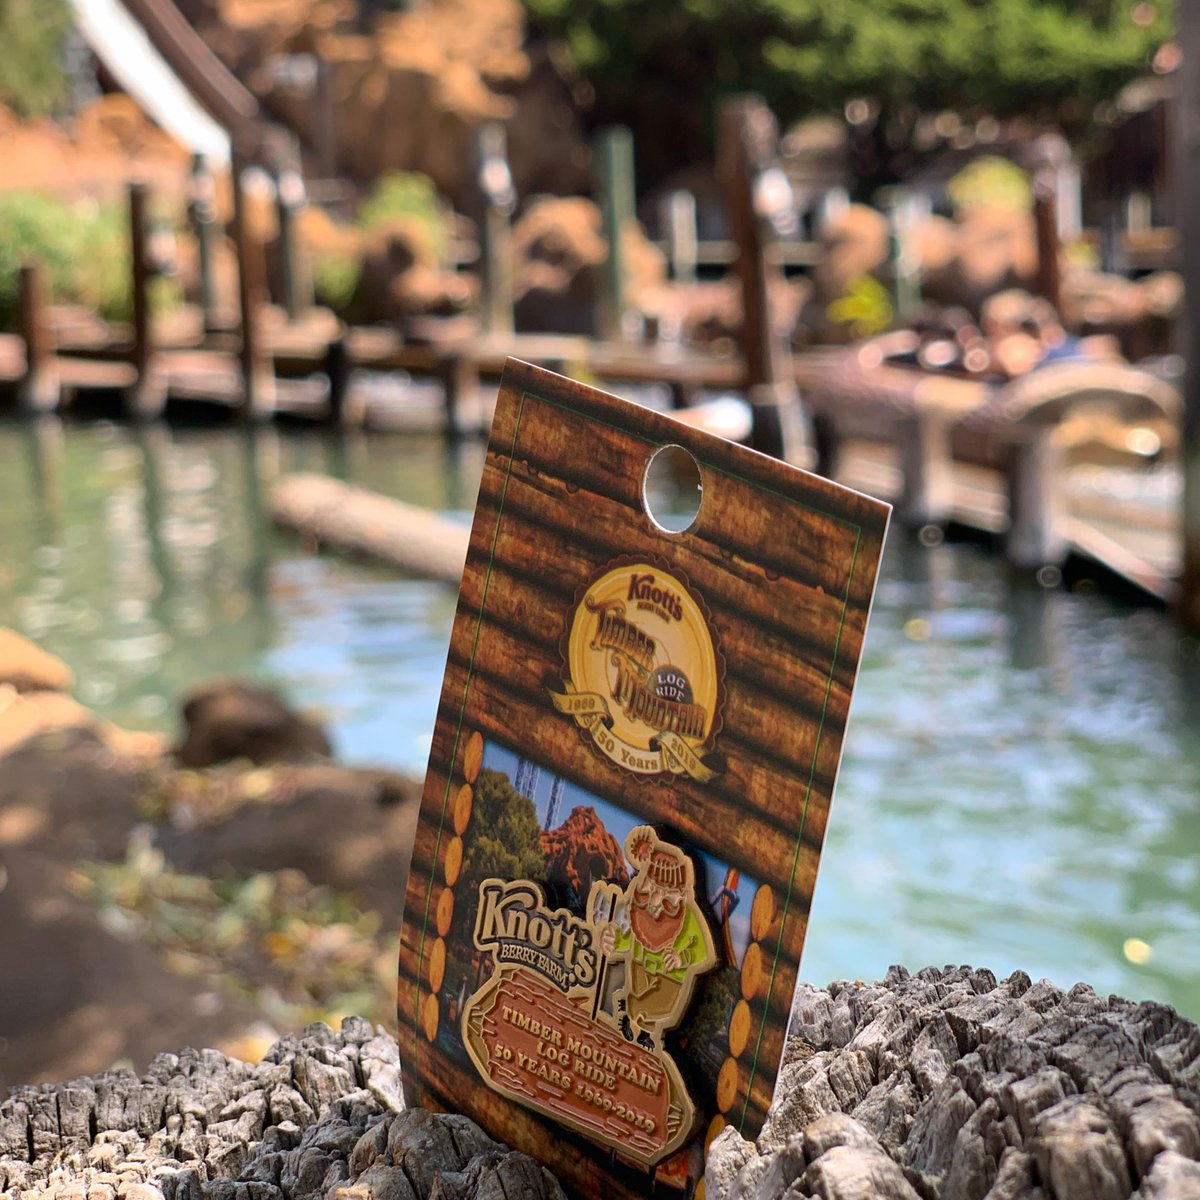 Knott S Berry Farm On Twitter Don T Miss The Anniversary Pin Celebrating Timber Mountain Log Ride Purchase A 6x8 Ride Photo And Receive One For Free The Pin Is Also Available At The